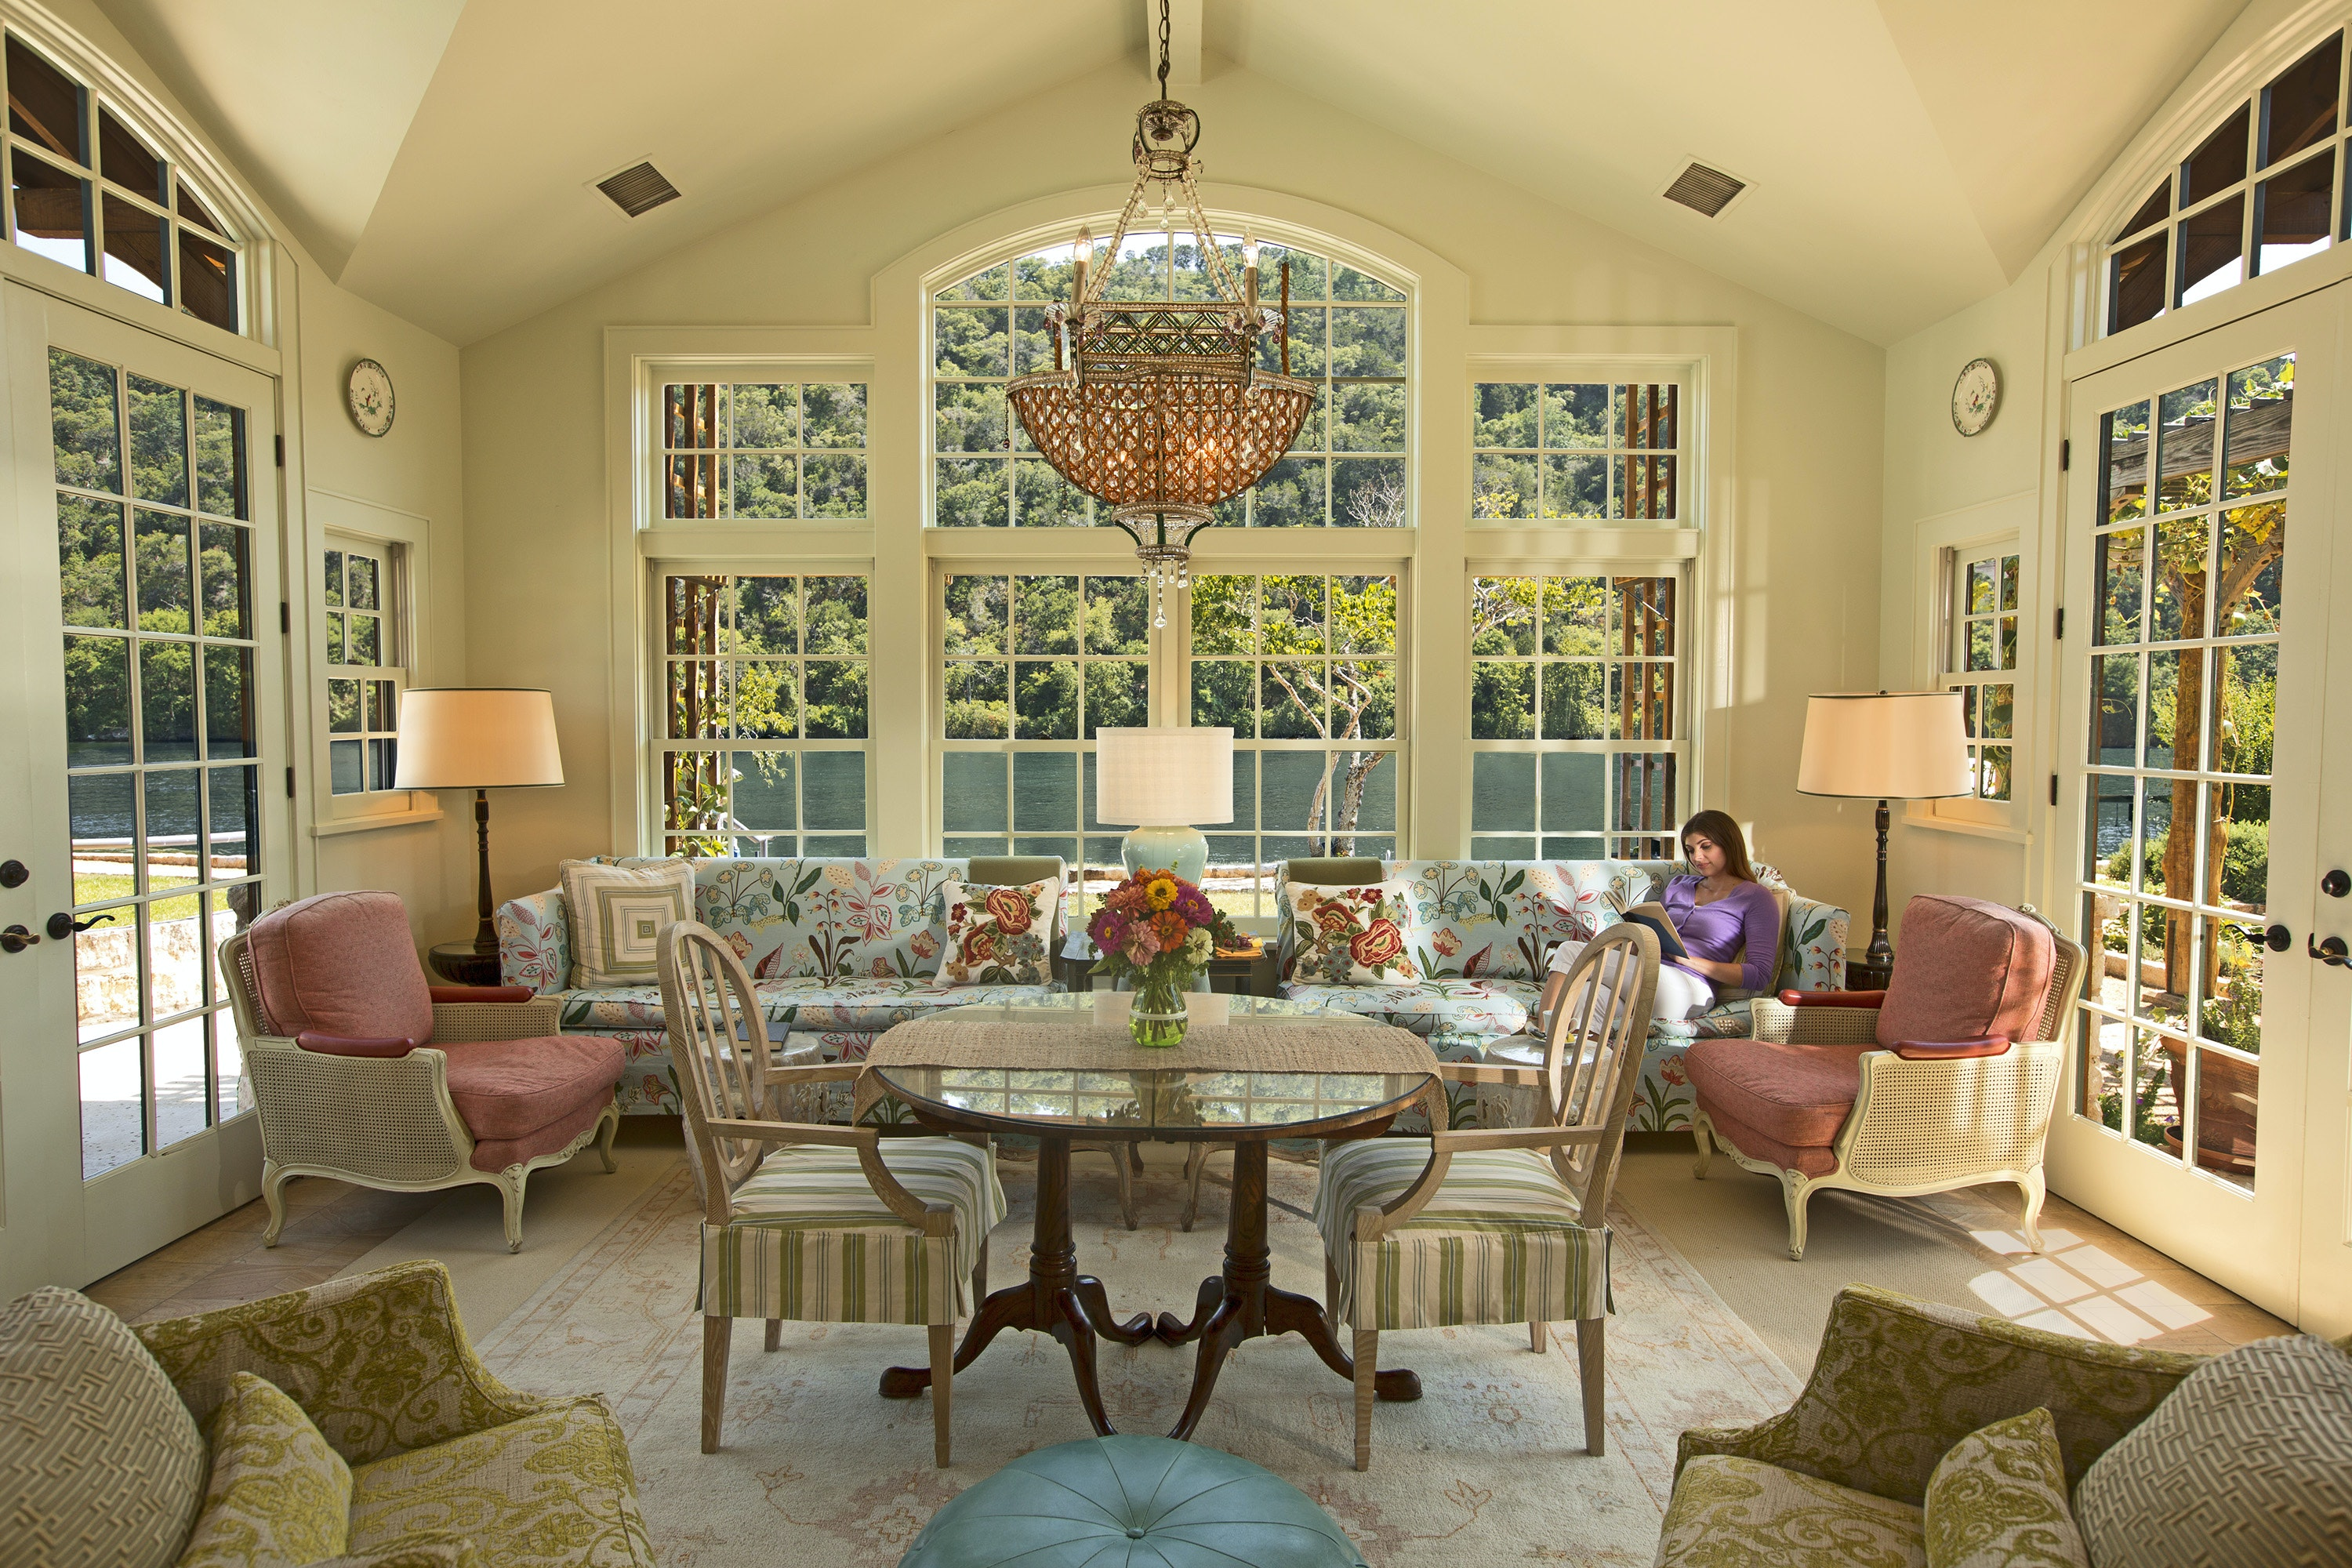 The Garden Library at Lake Austin Spa Resort is filled with signed books from visiting authors.